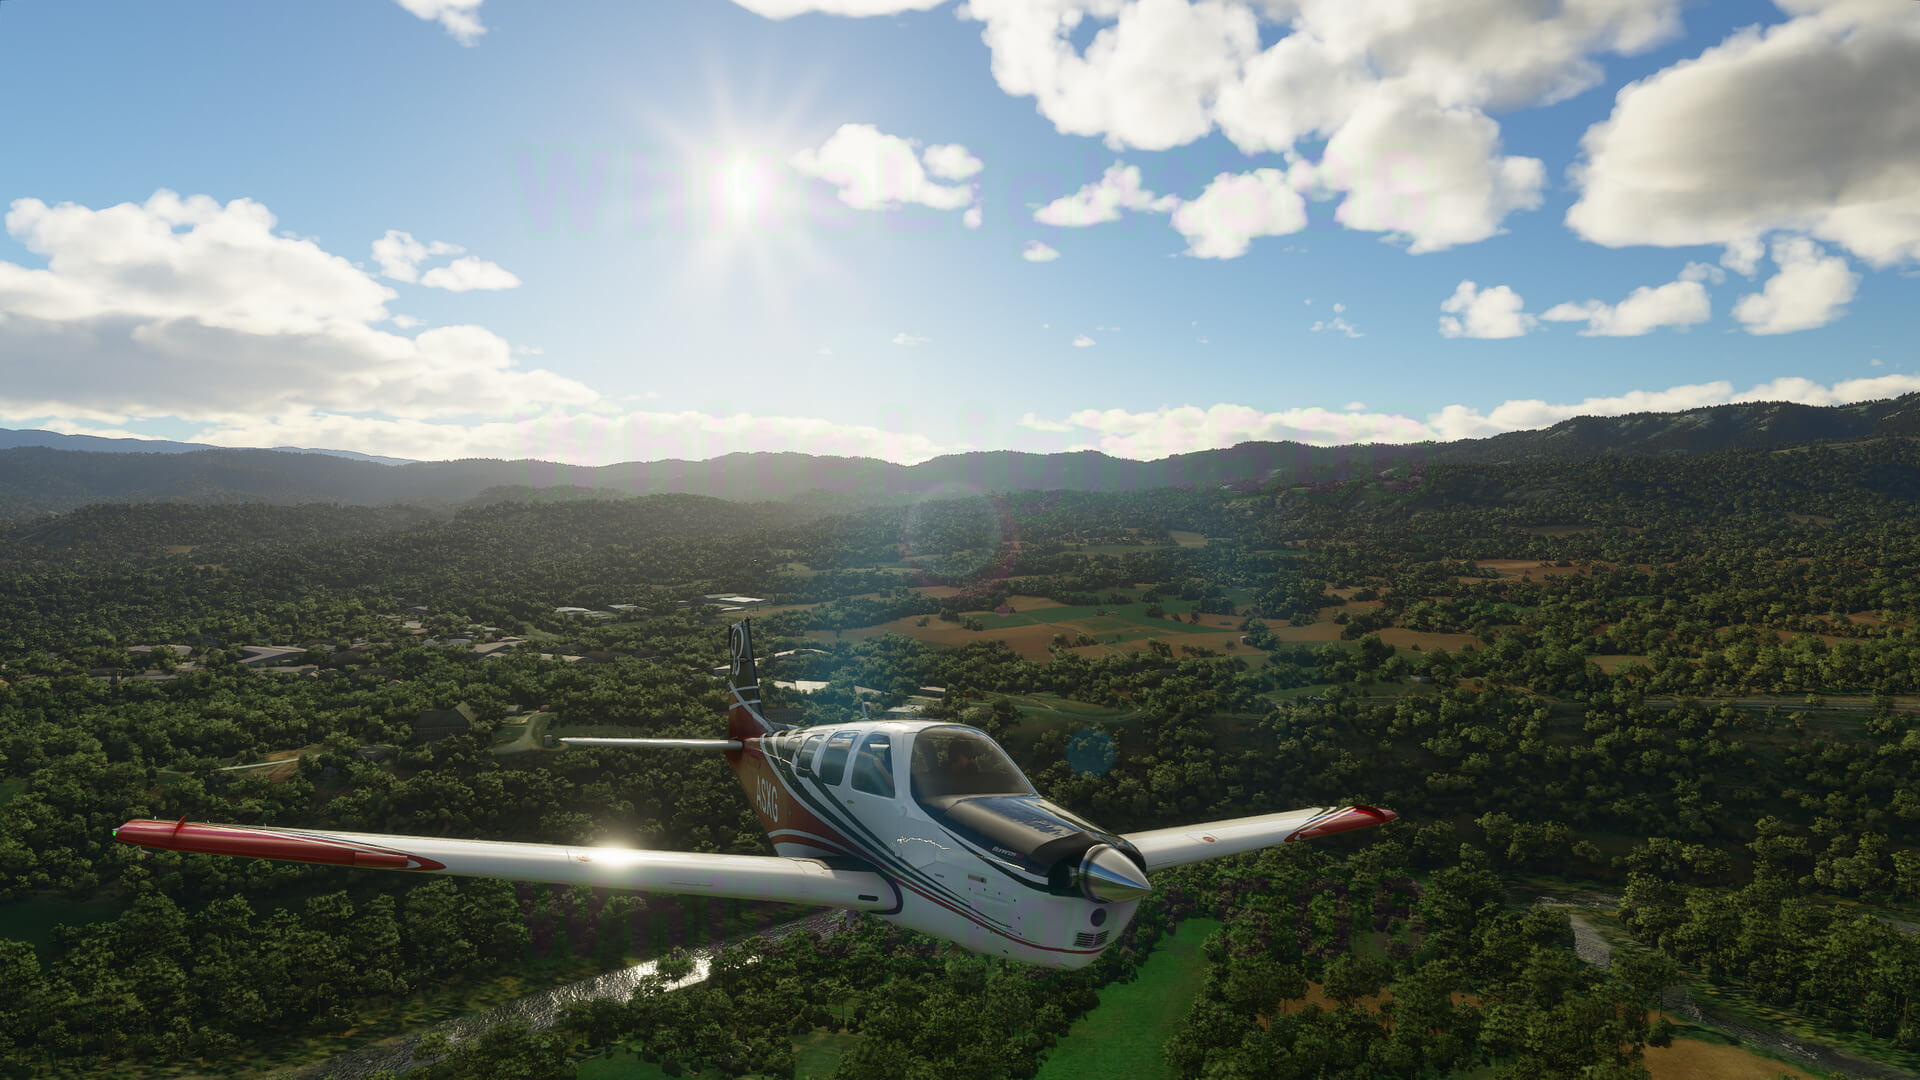 Microsoft Flight Simulator captura 7 paisaje verde